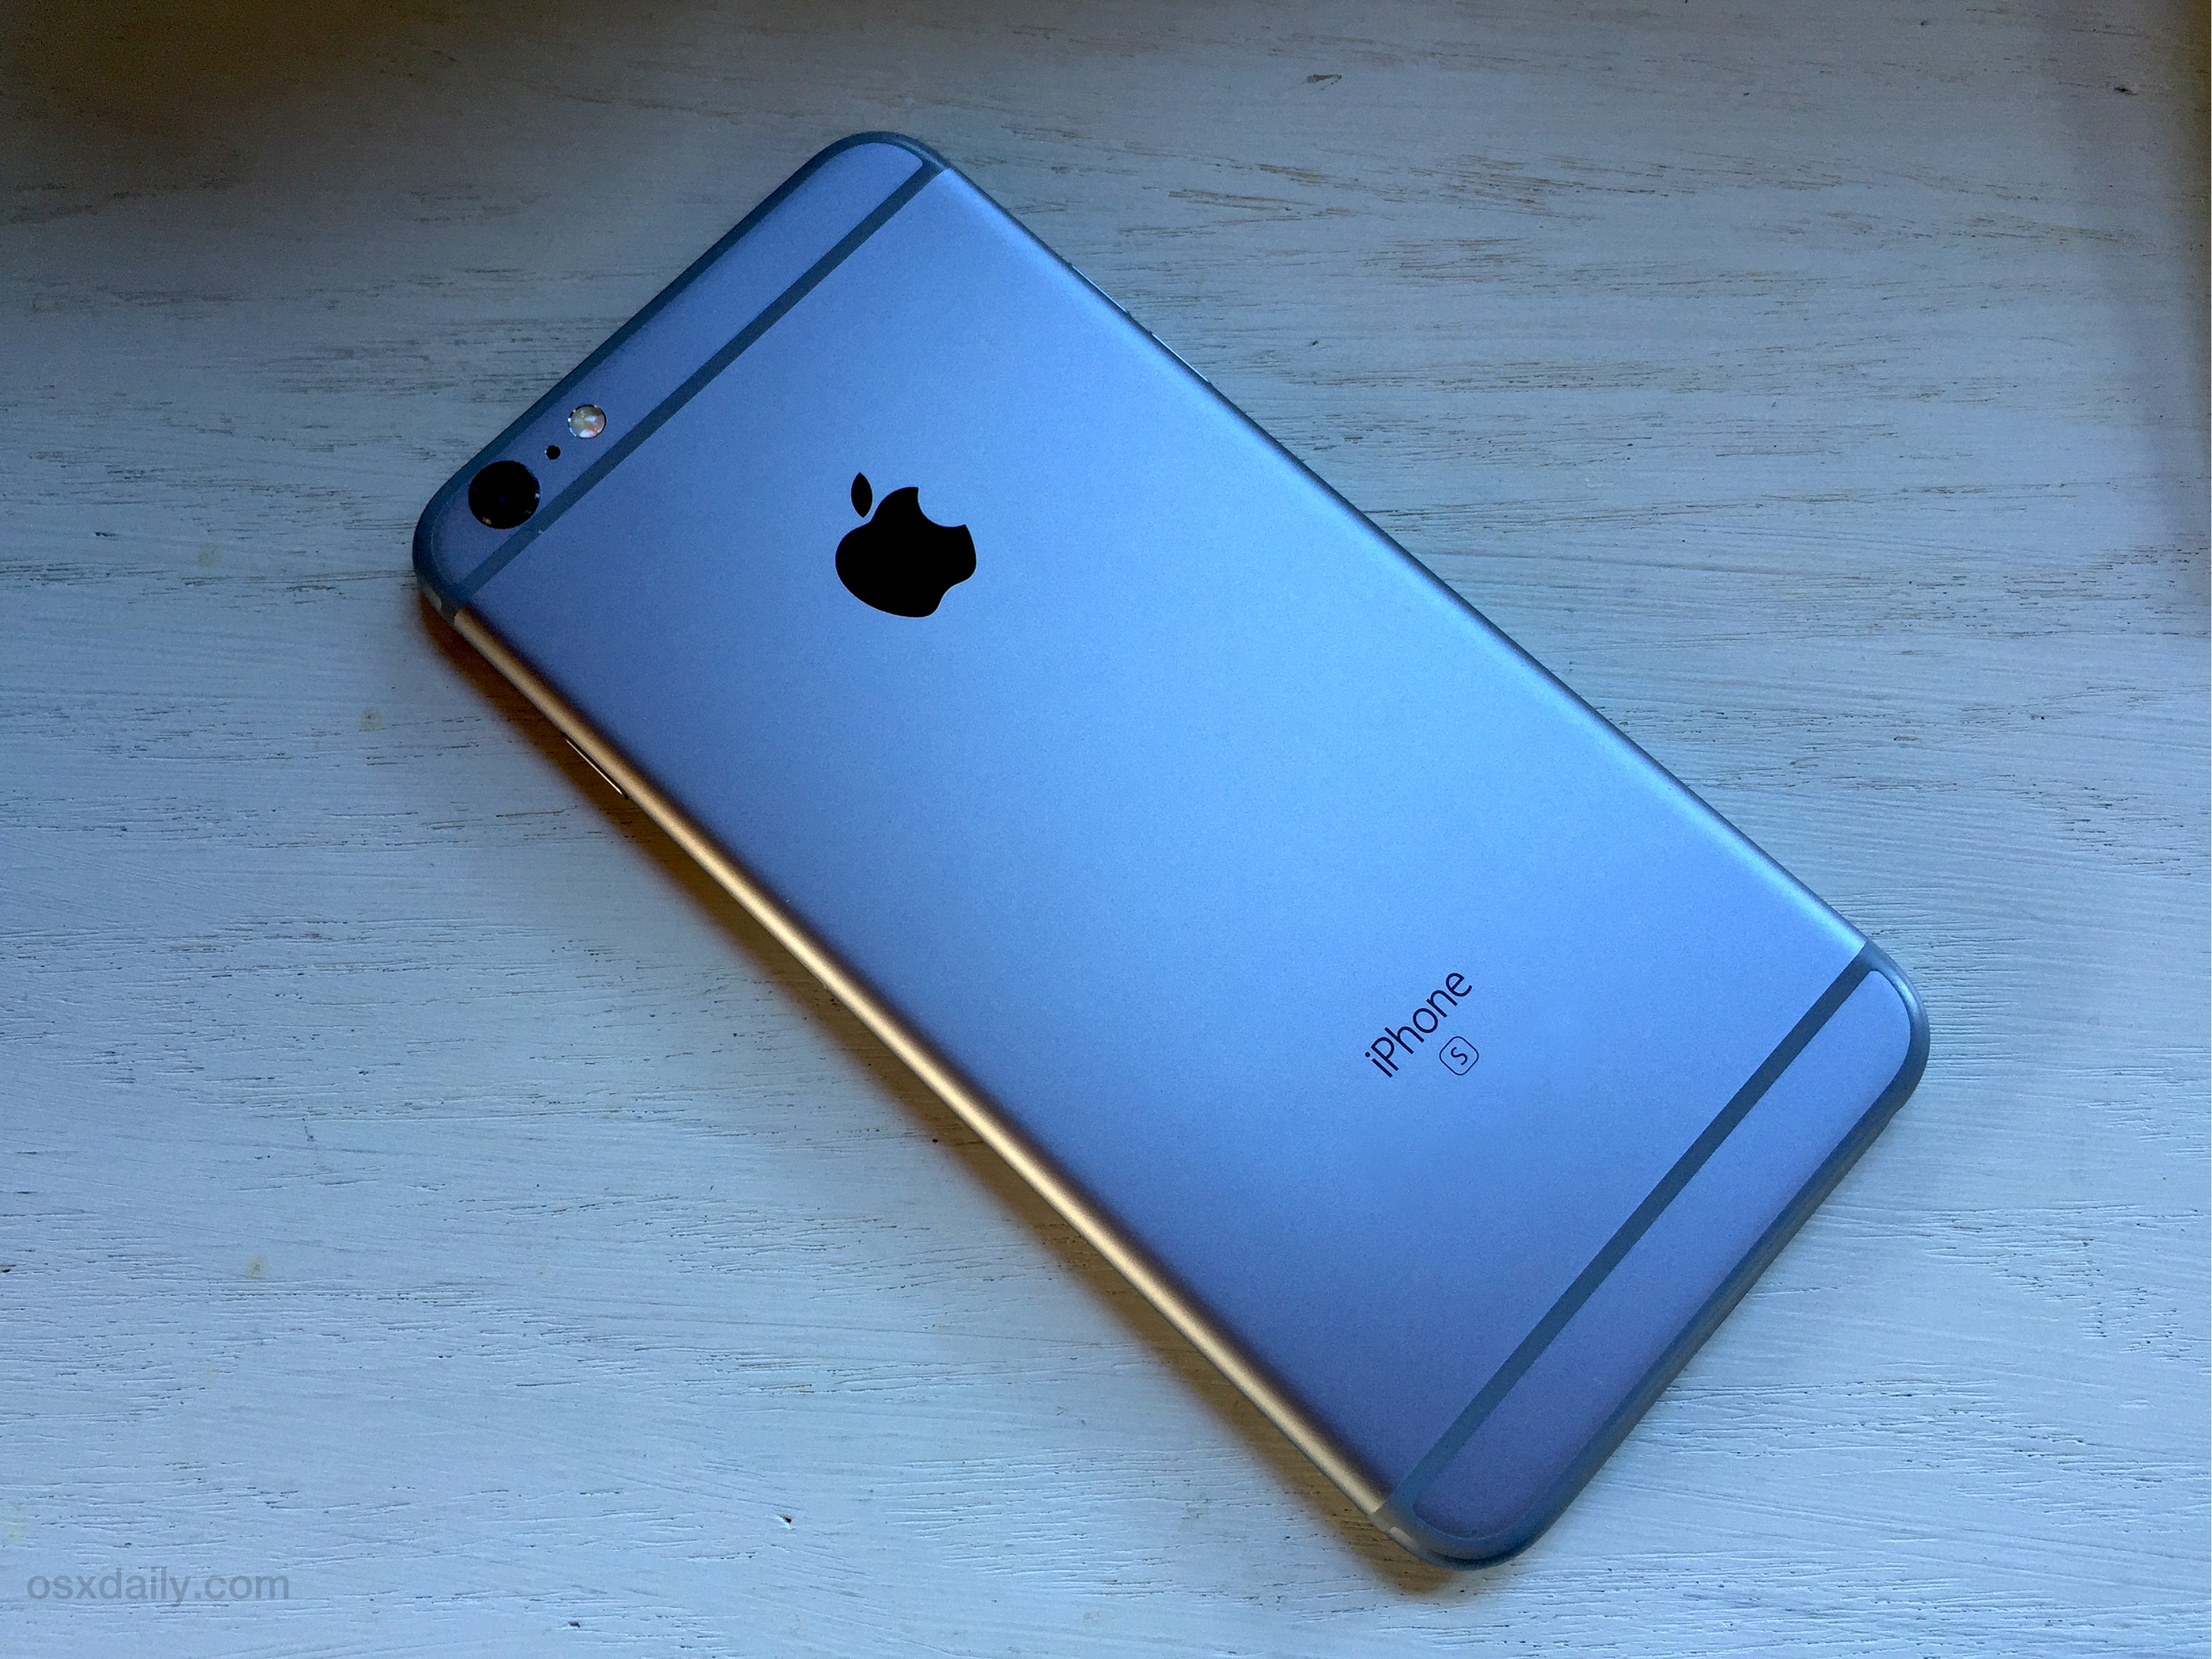 Iphone 6s Plus Durability Tests Show